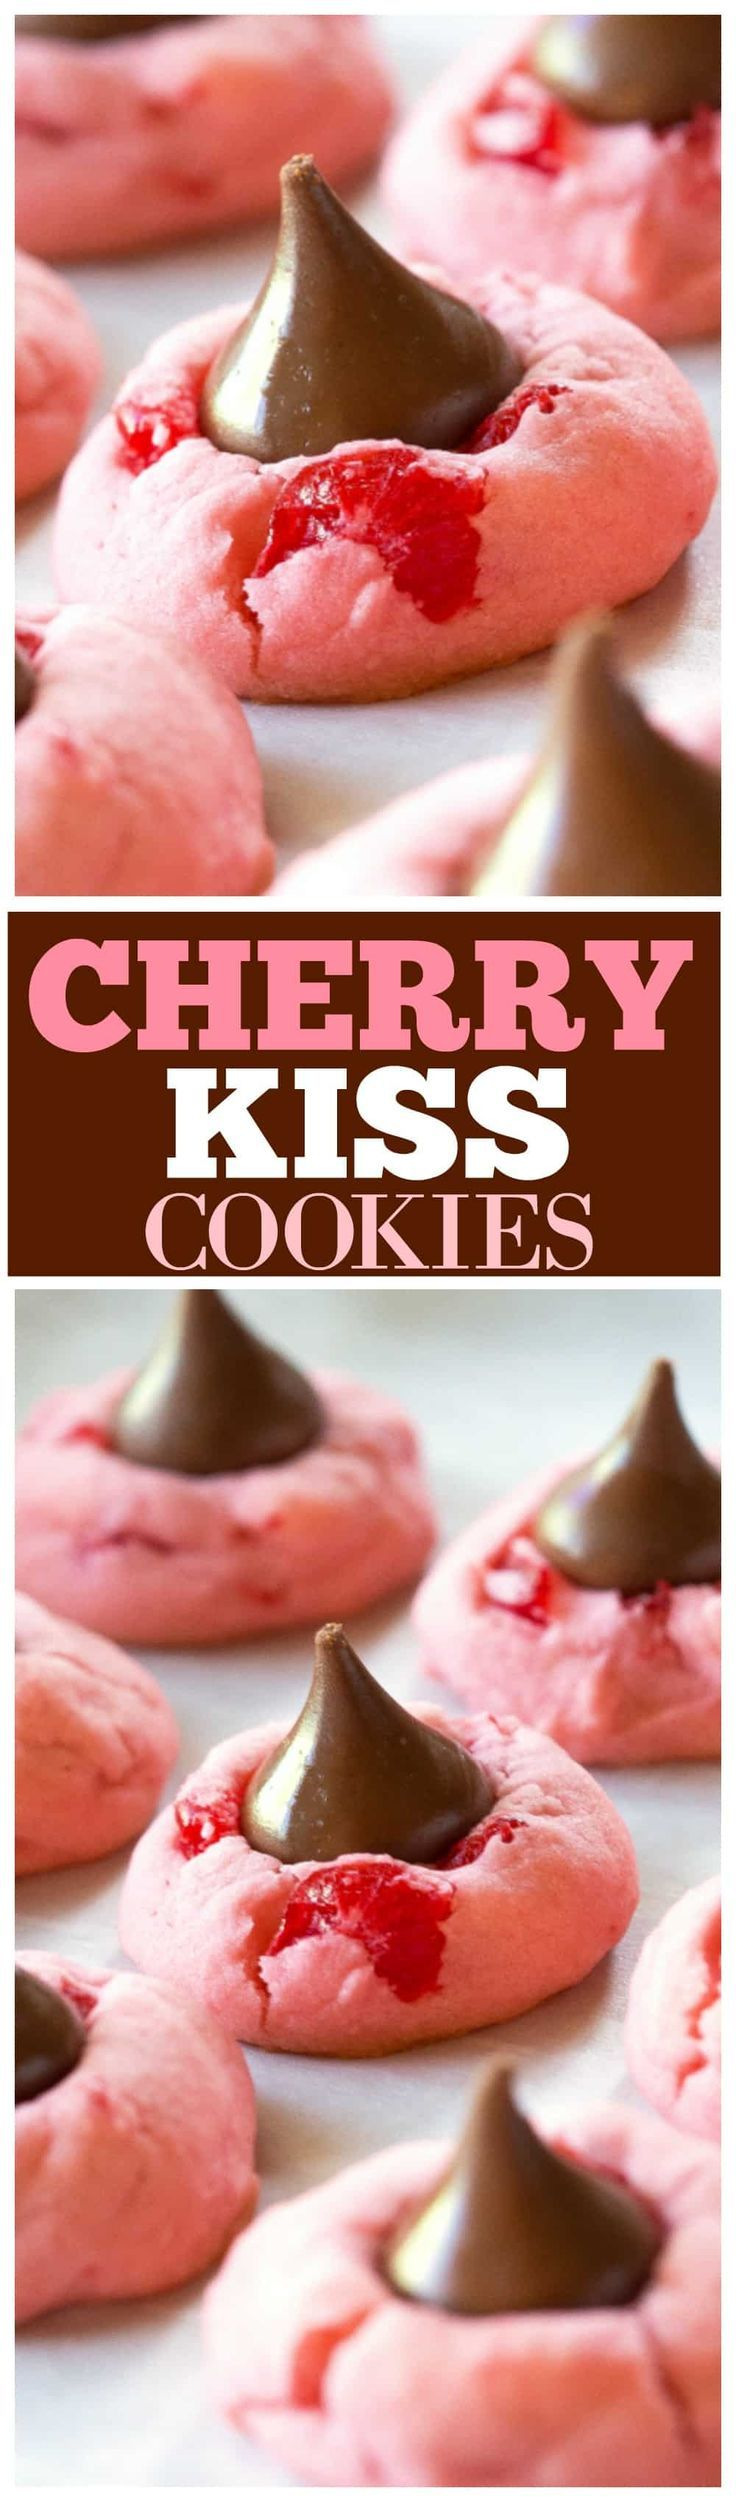 These Cherry Kiss Cookies are sweet cherry almond cookies with a chocolate Hershey kiss in the middle. Great for Christmas cookie plates.